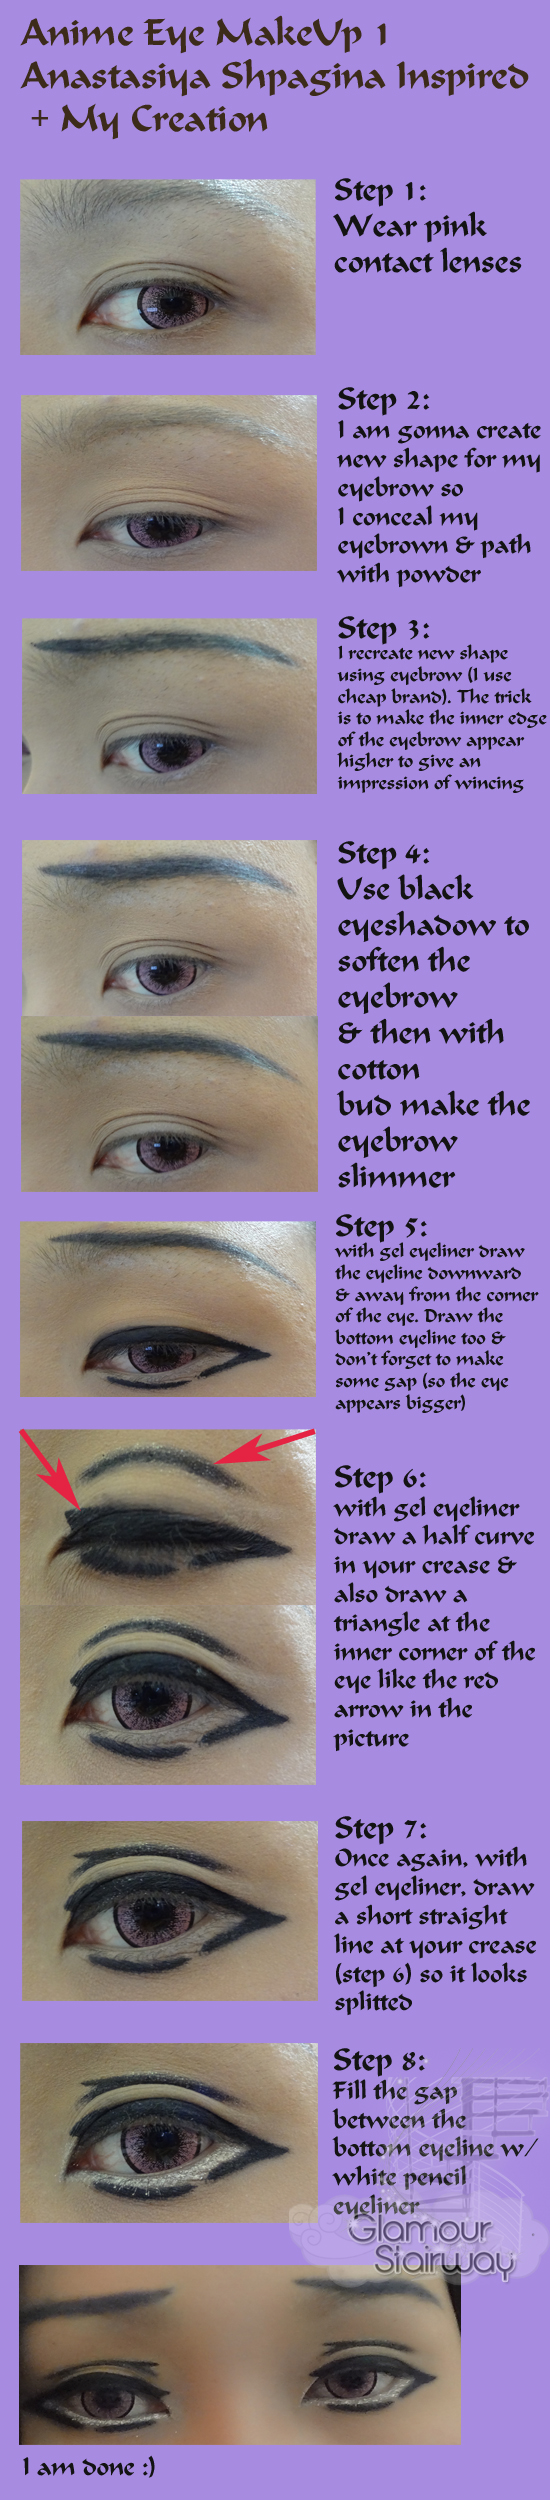 Step by Step Anime Eye Make Up 1